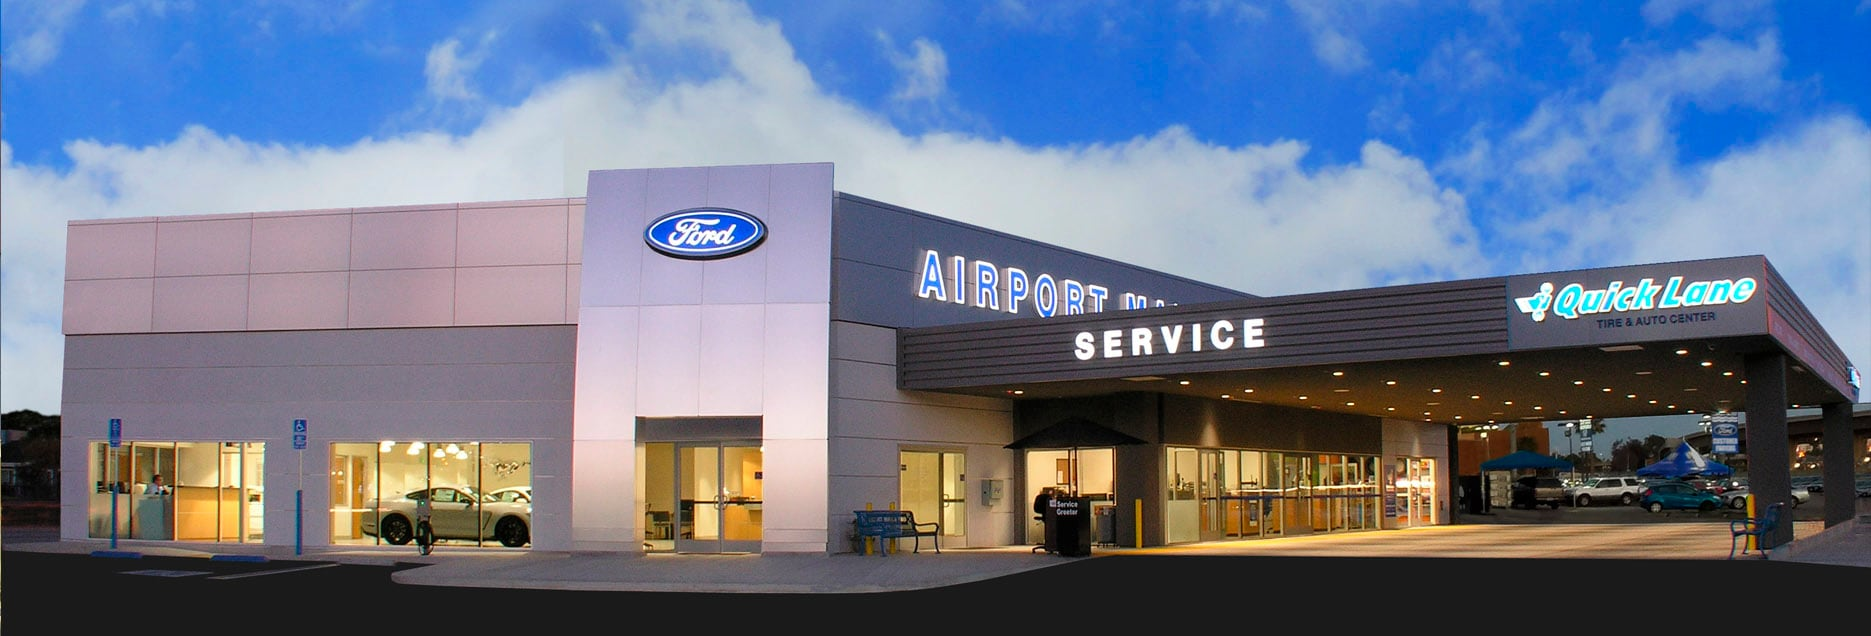 about airport marina ford los angeles new ford and used car dealer. Black Bedroom Furniture Sets. Home Design Ideas